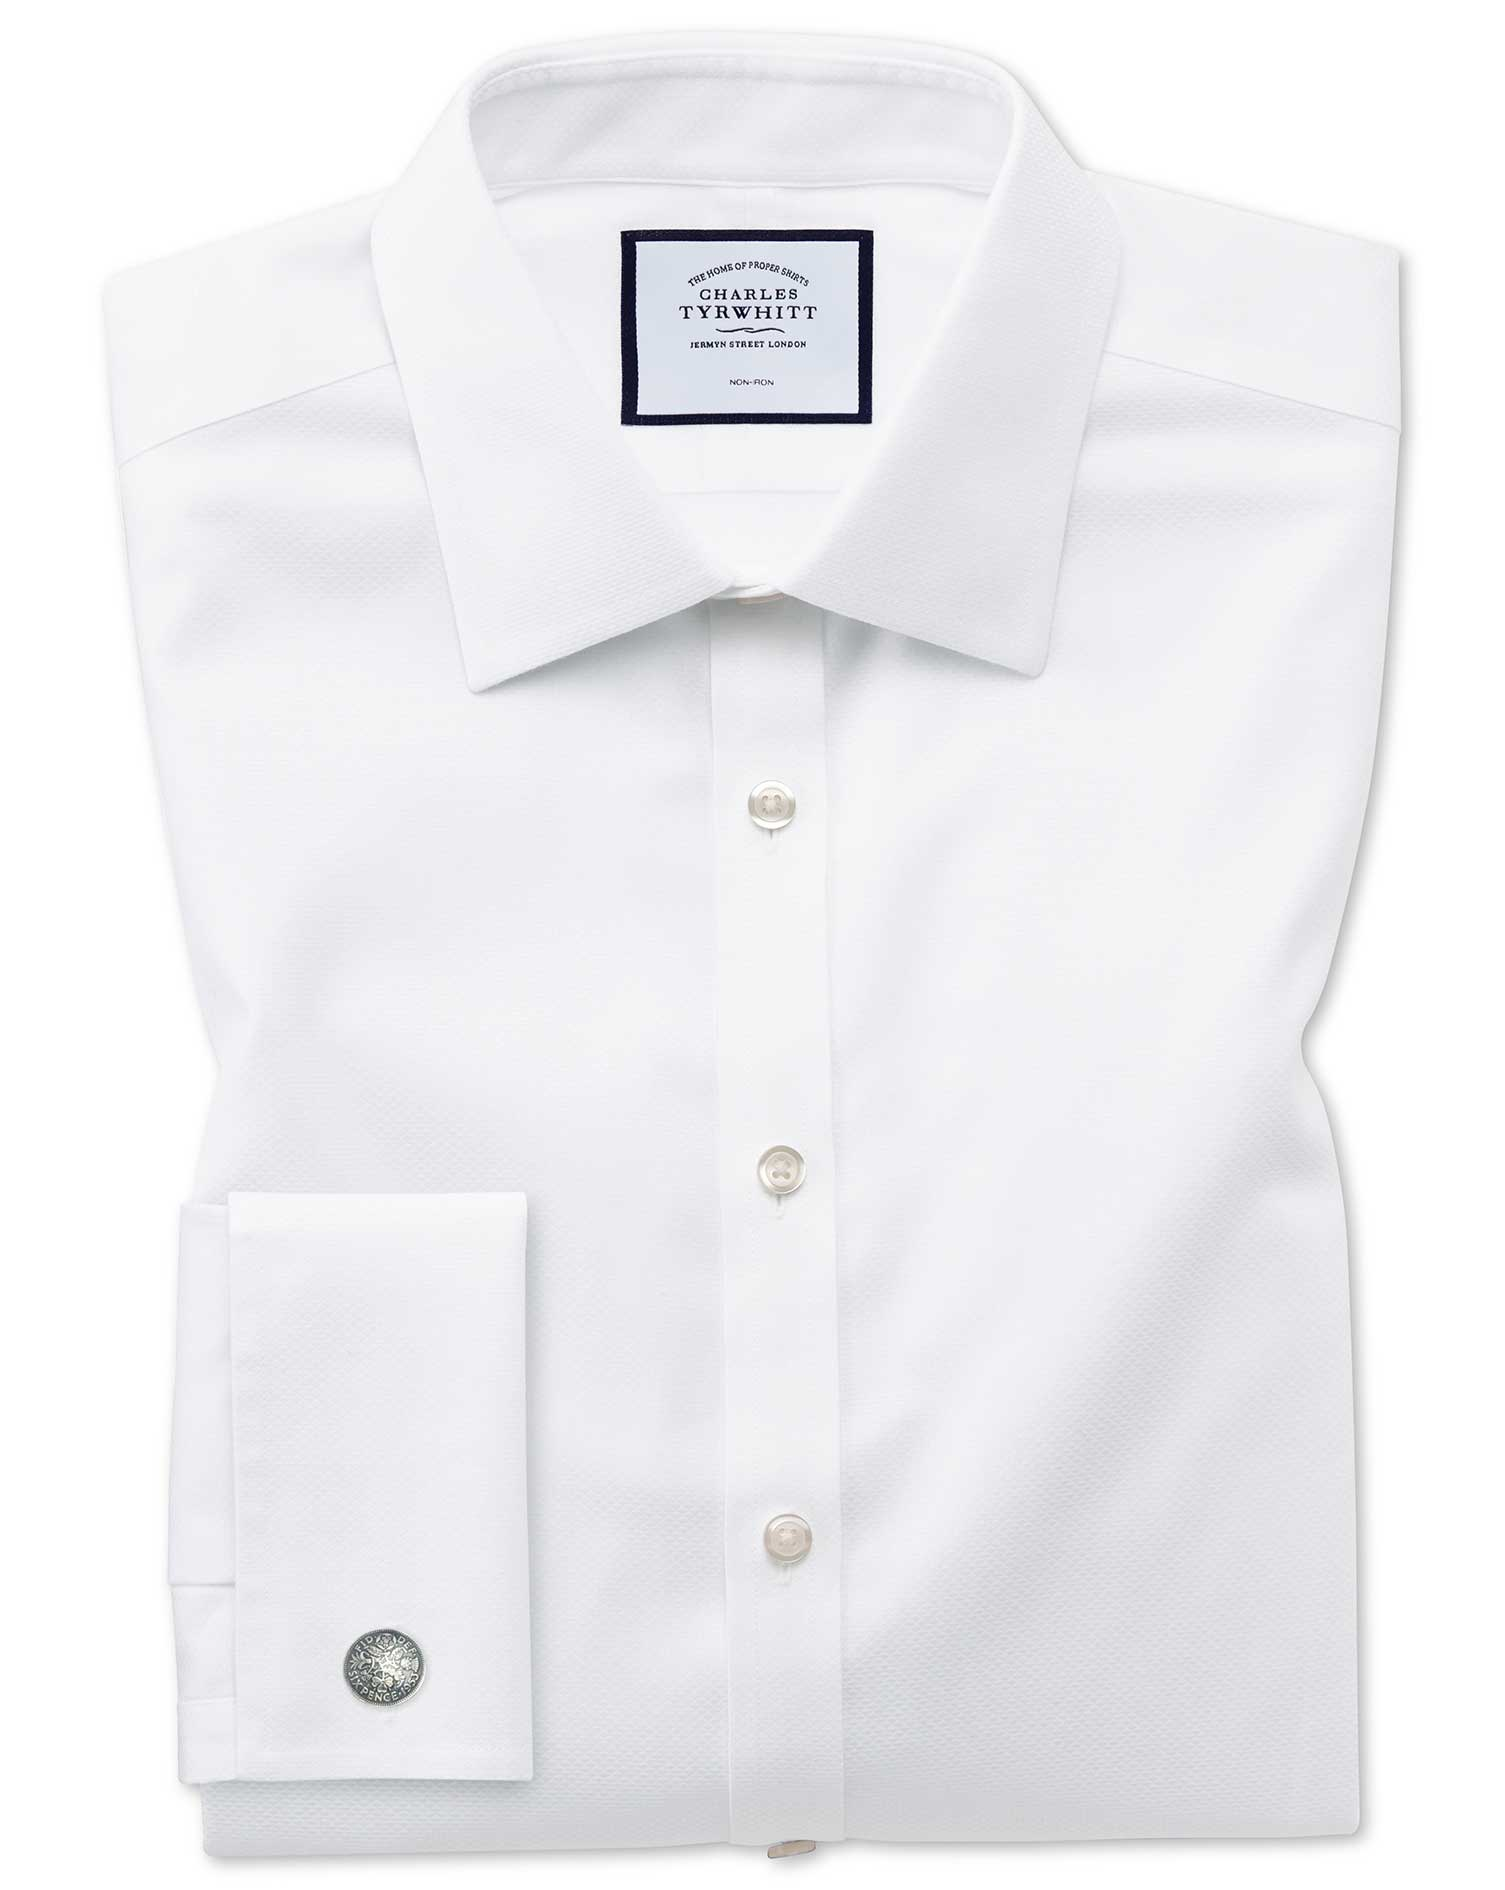 Super Slim Fit Non-Iron White Triangle Weave Cotton Formal Shirt Single Cuff Size 15.5/35 by Charles